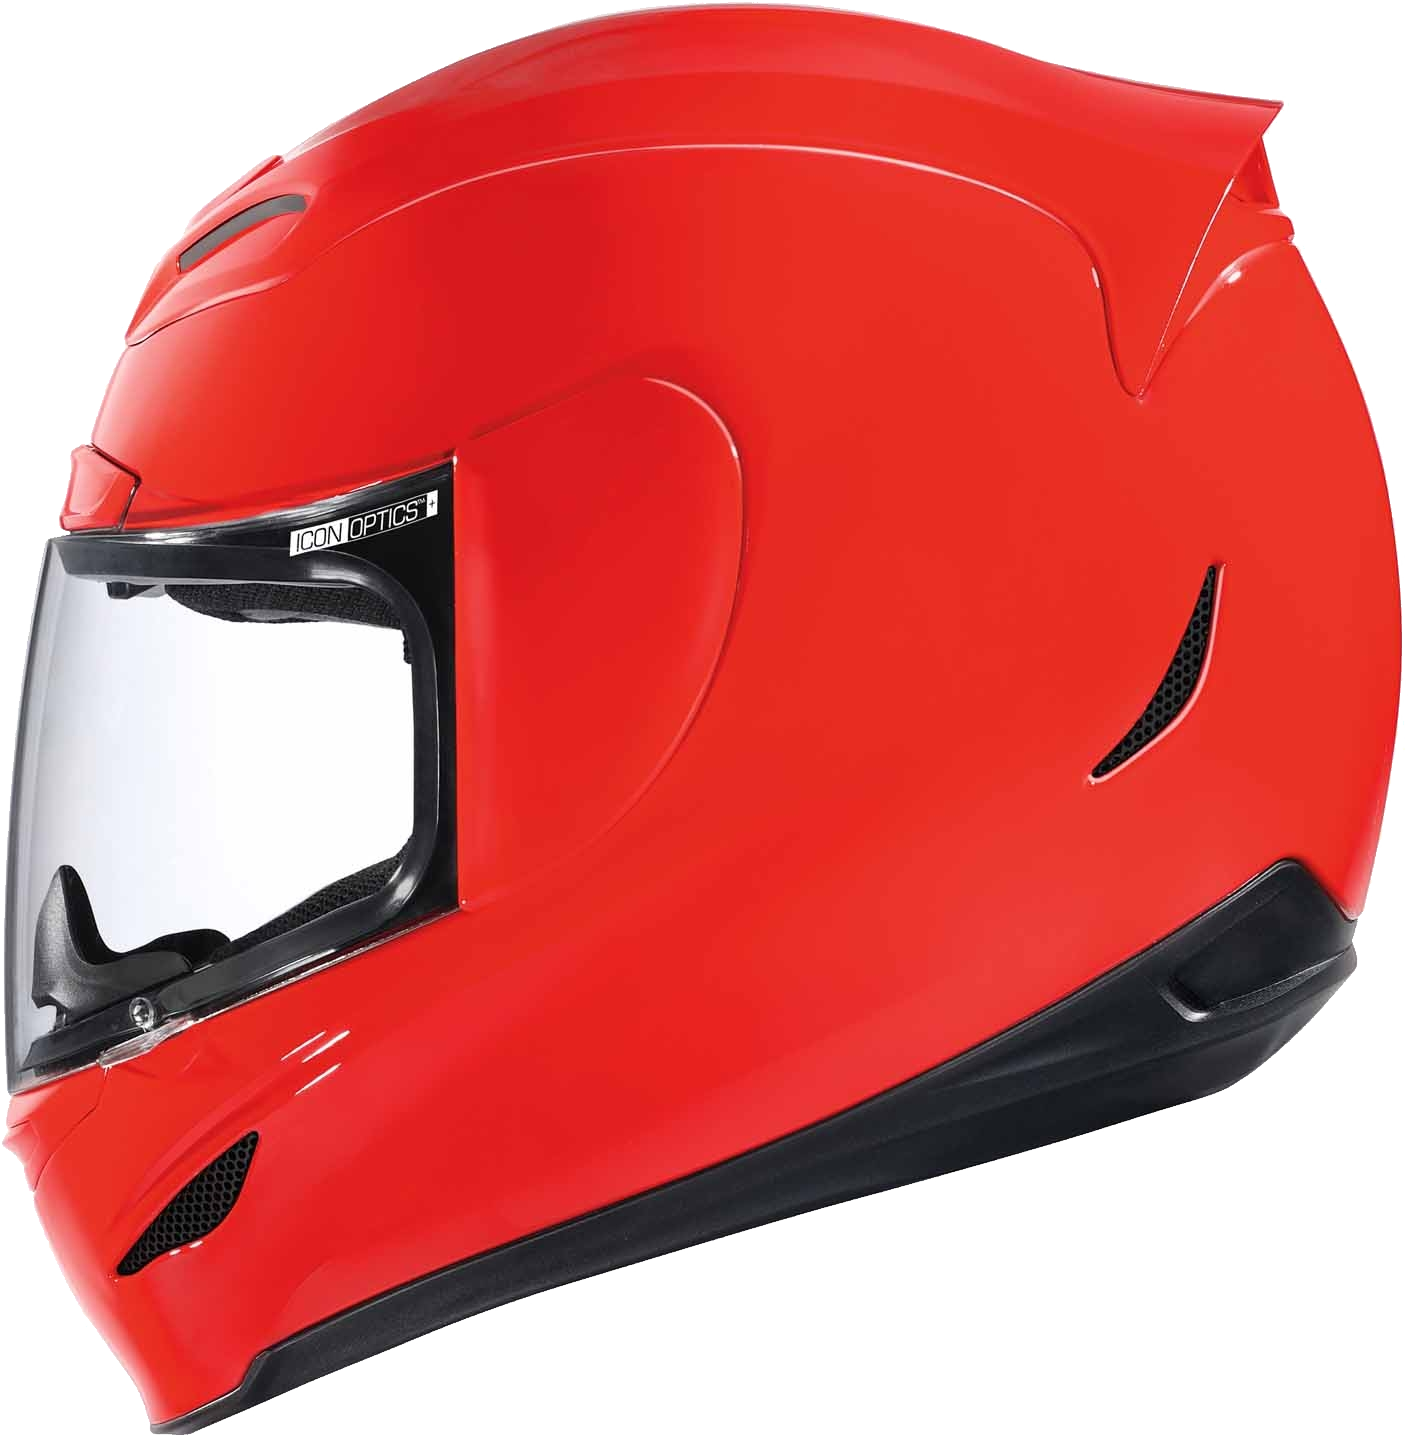 Motorcycle clipart red motorcycle. Helmets png images free